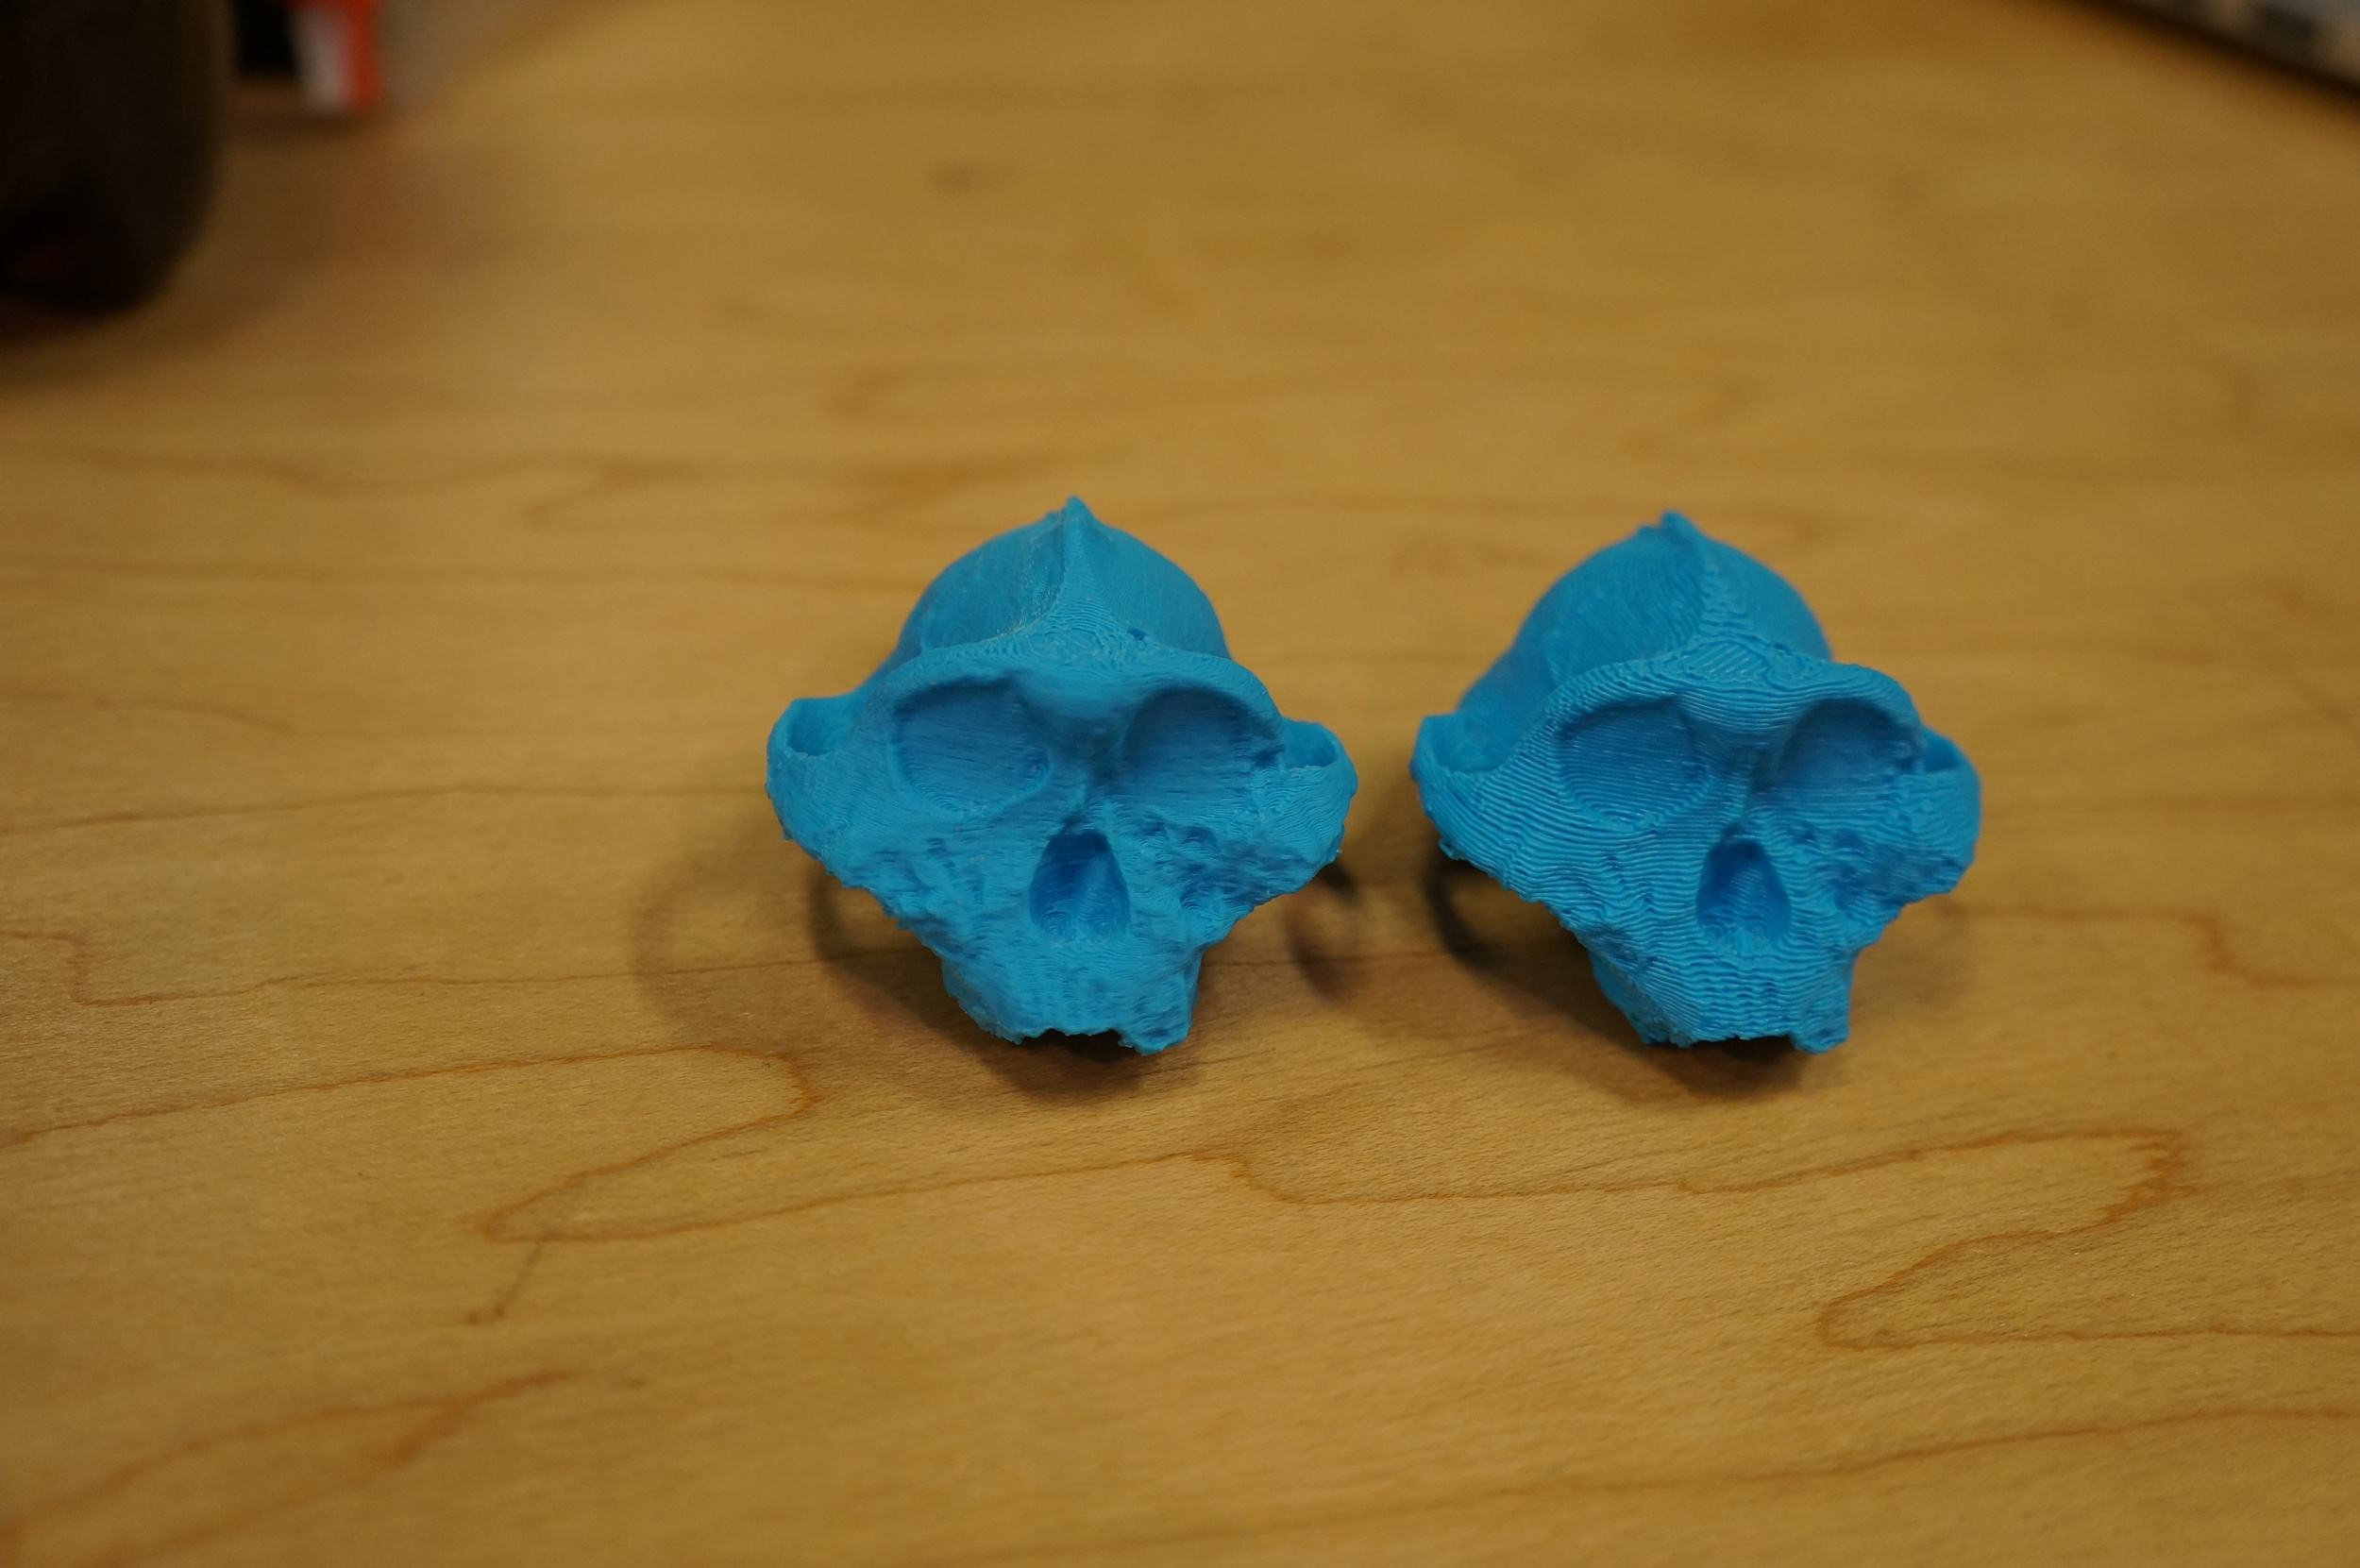 Both prints side by side -- fine resolution on the left and coarse resolution on the right.